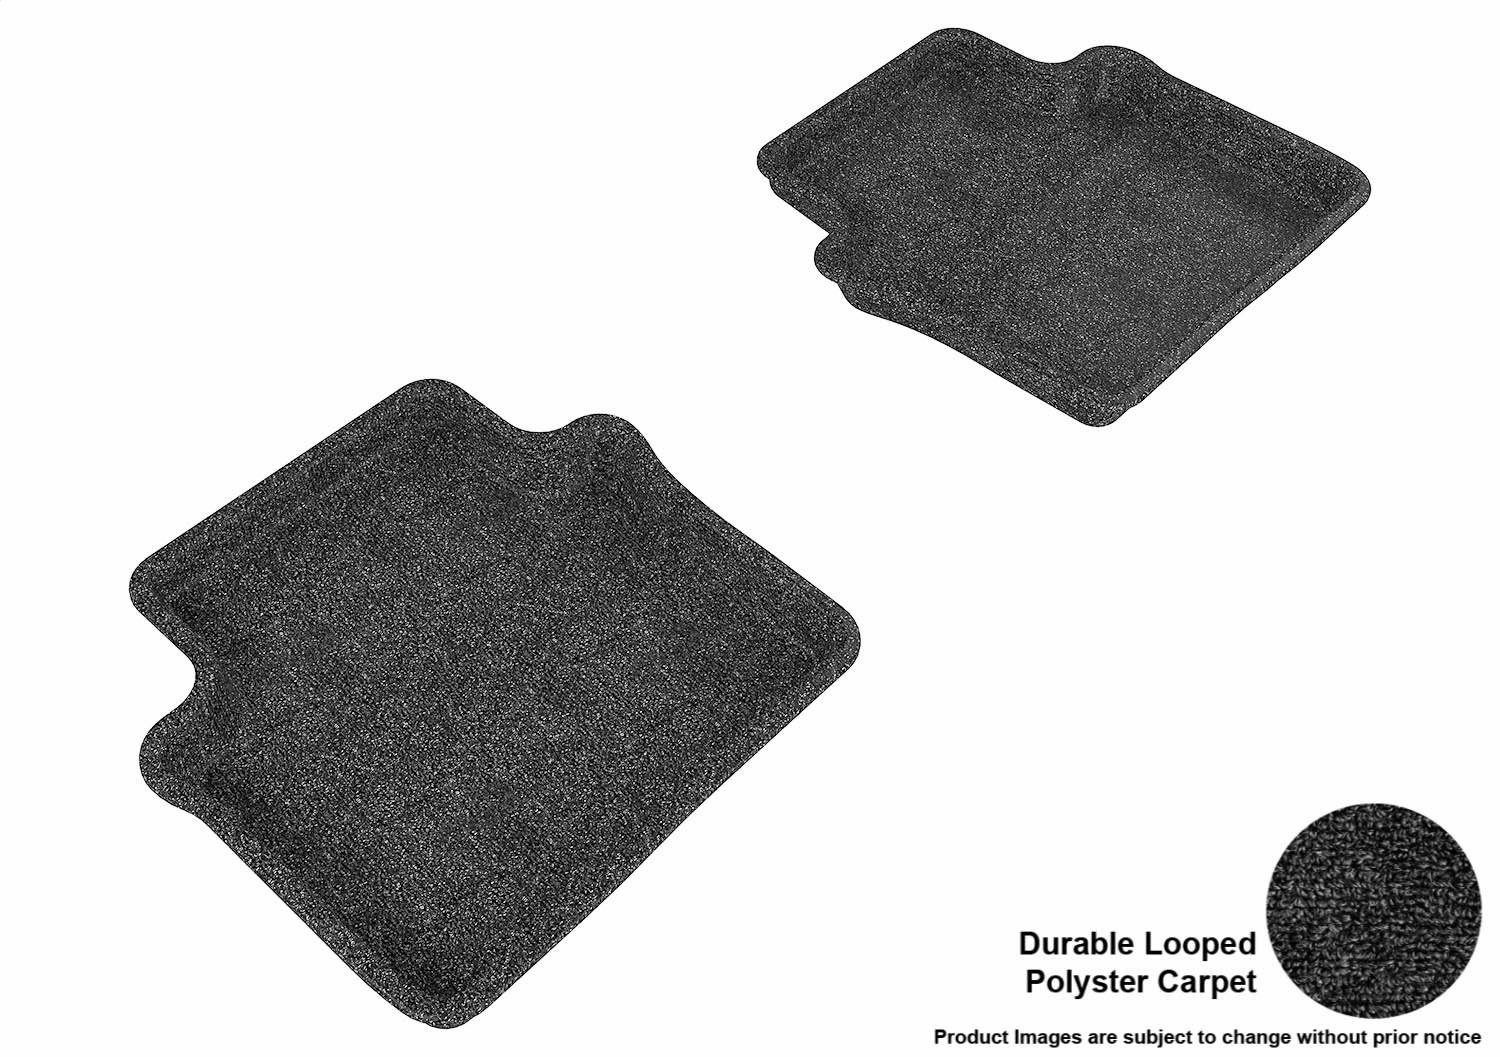 L1CY00112209 Black Classic Carpet 3D MAXpider Front Row Custom Fit All-Weather Floor Mat for Select Chrysler Sebring Sedan Models